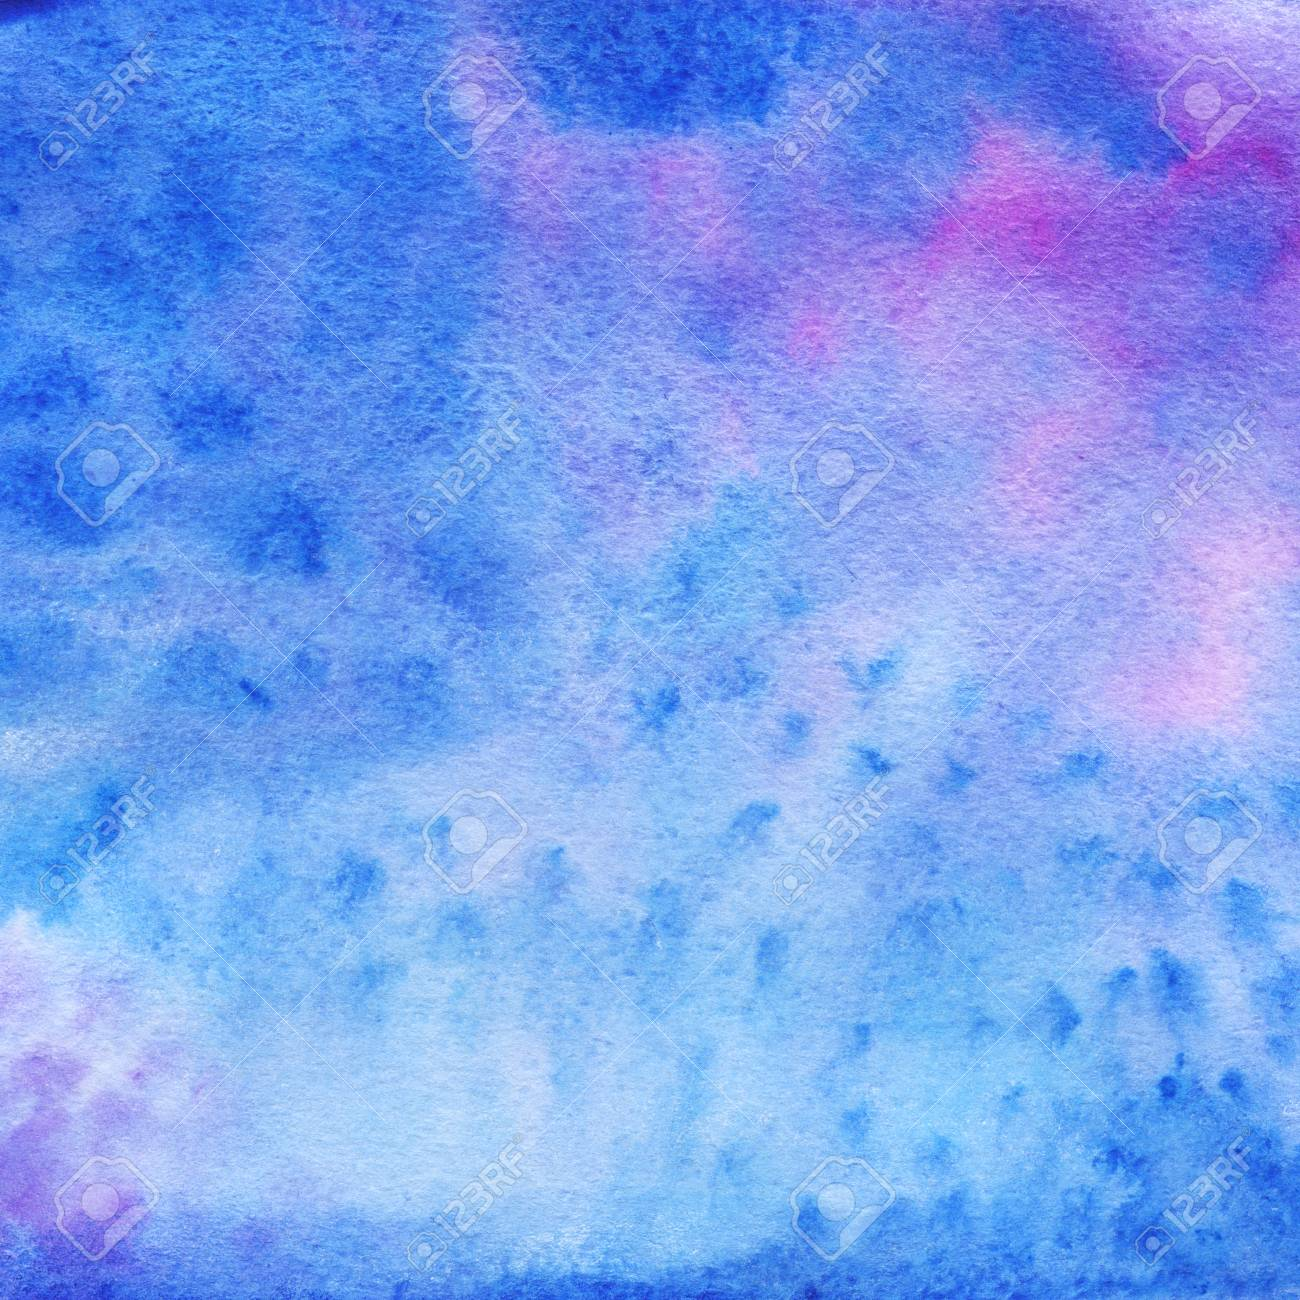 Painted Magic Background Watercolor Printable Texture Stock Photo 1300x1300